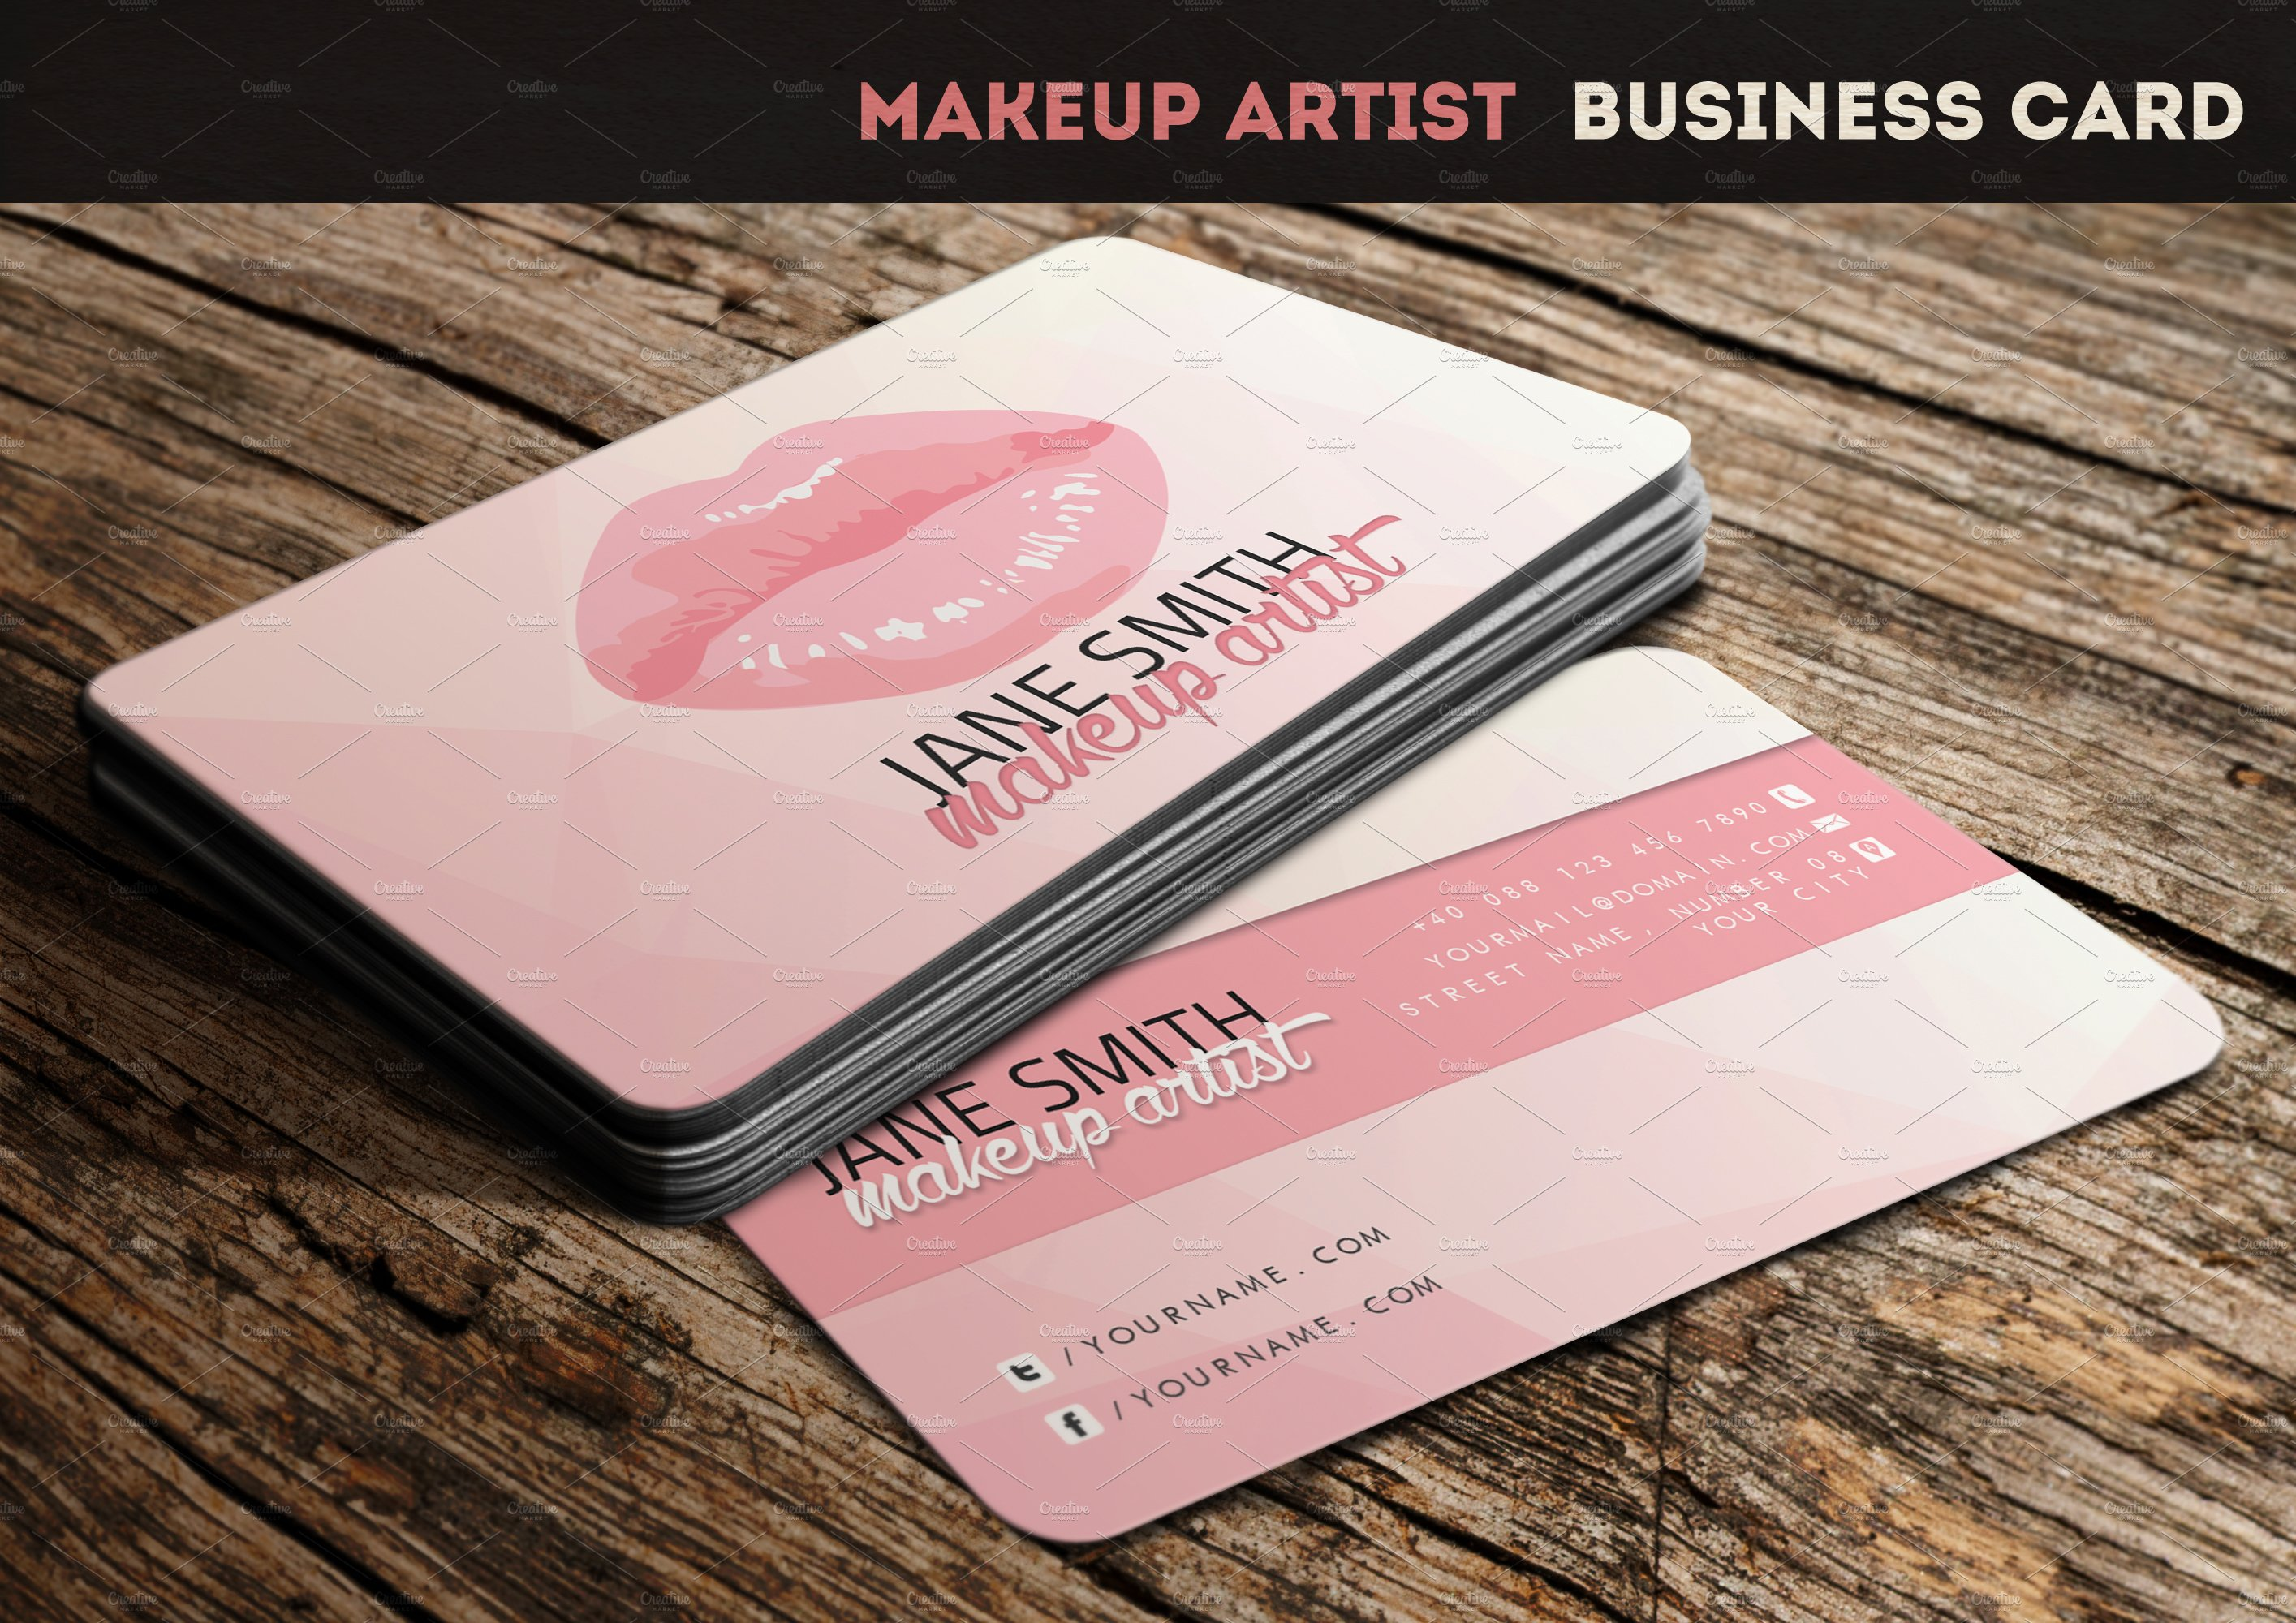 Makeup artist business card business card templates creative market cheaphphosting